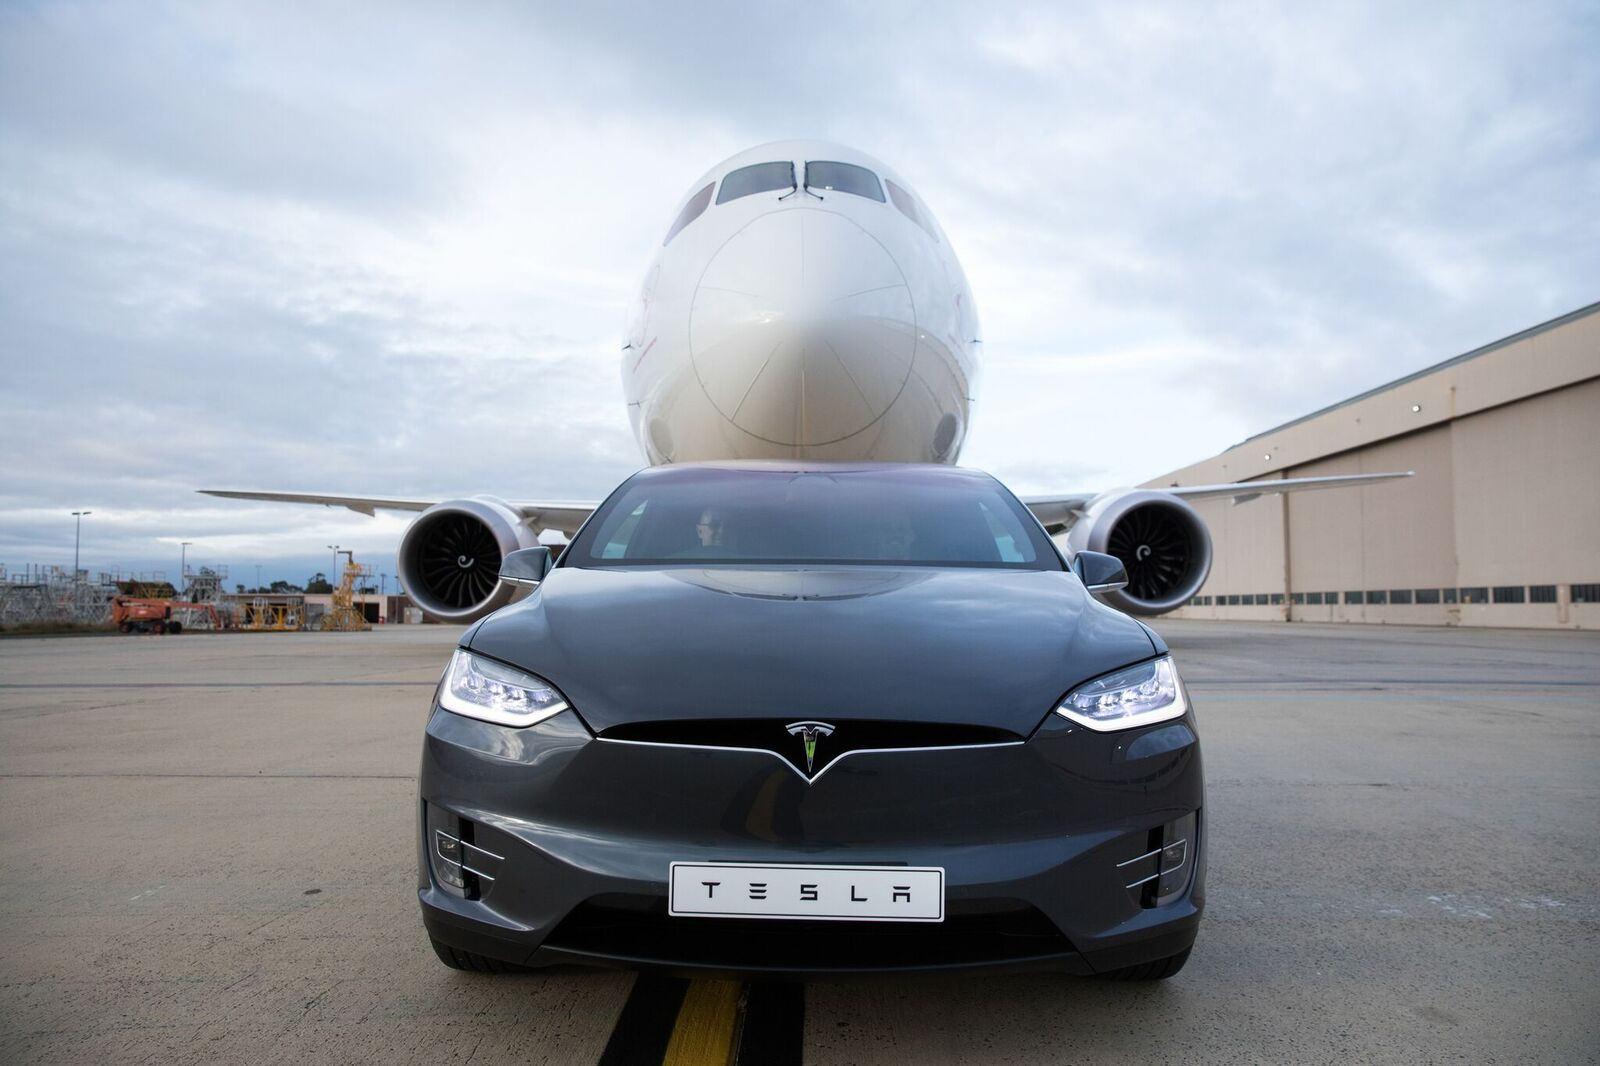 Tesla SUV earns Guinness World Record by towing plane